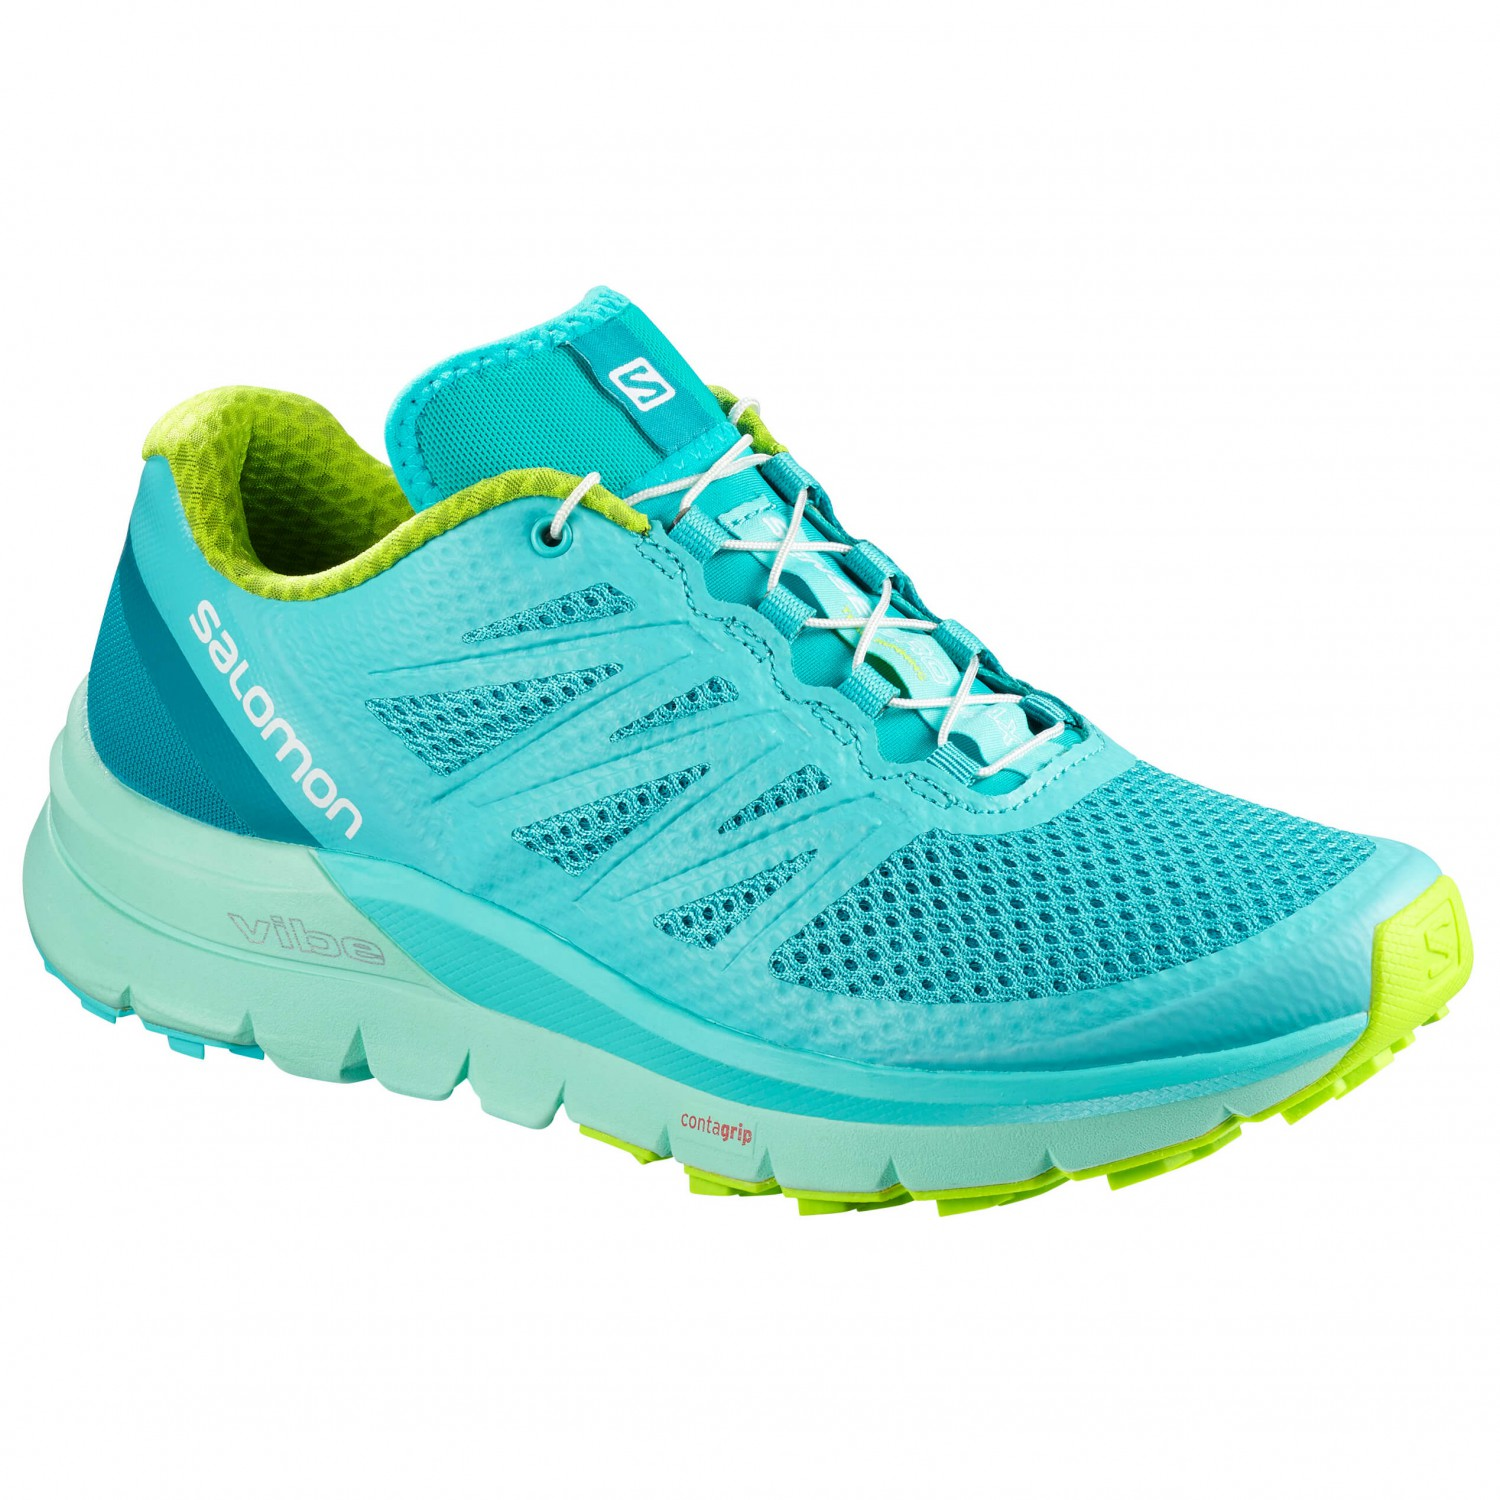 Salomon - Women's Sense Pro Max - Trailrunningschuhe Blue Curacao / Beach Glass / Acid Lime